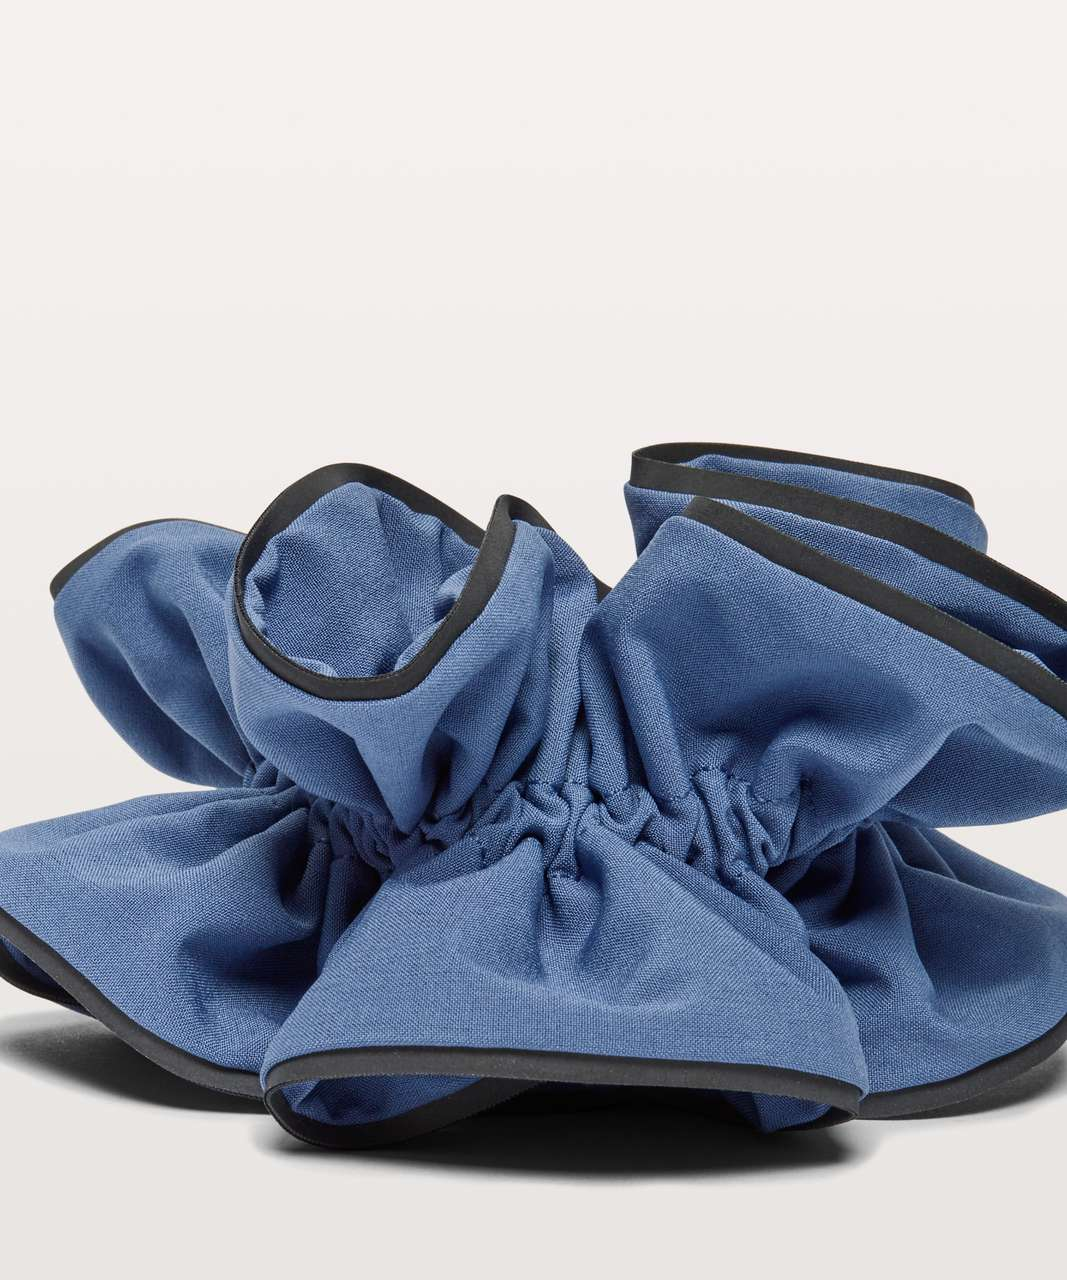 Lululemon Light Locks Scrunchie - Brilliant Blue